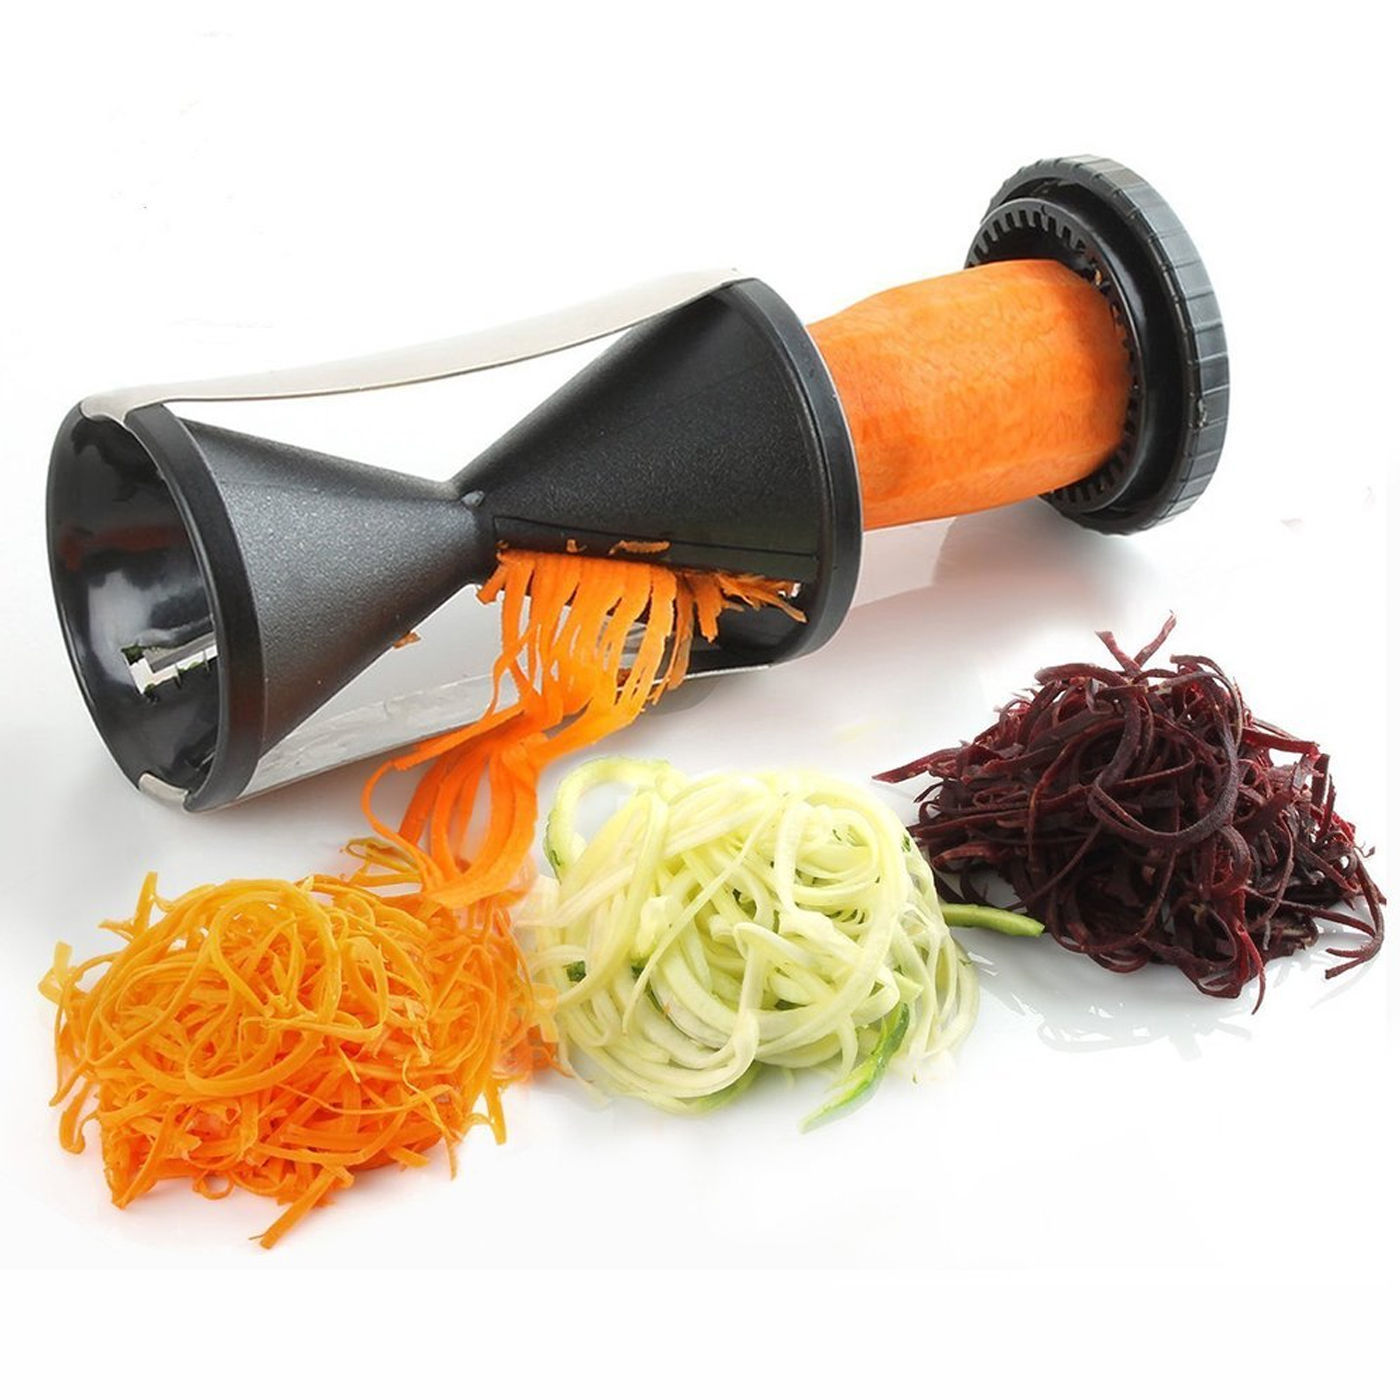 Vegetable Spiral Slicer Fruit Cutter Peeler Kitchen Tool Spiralizer Twister New